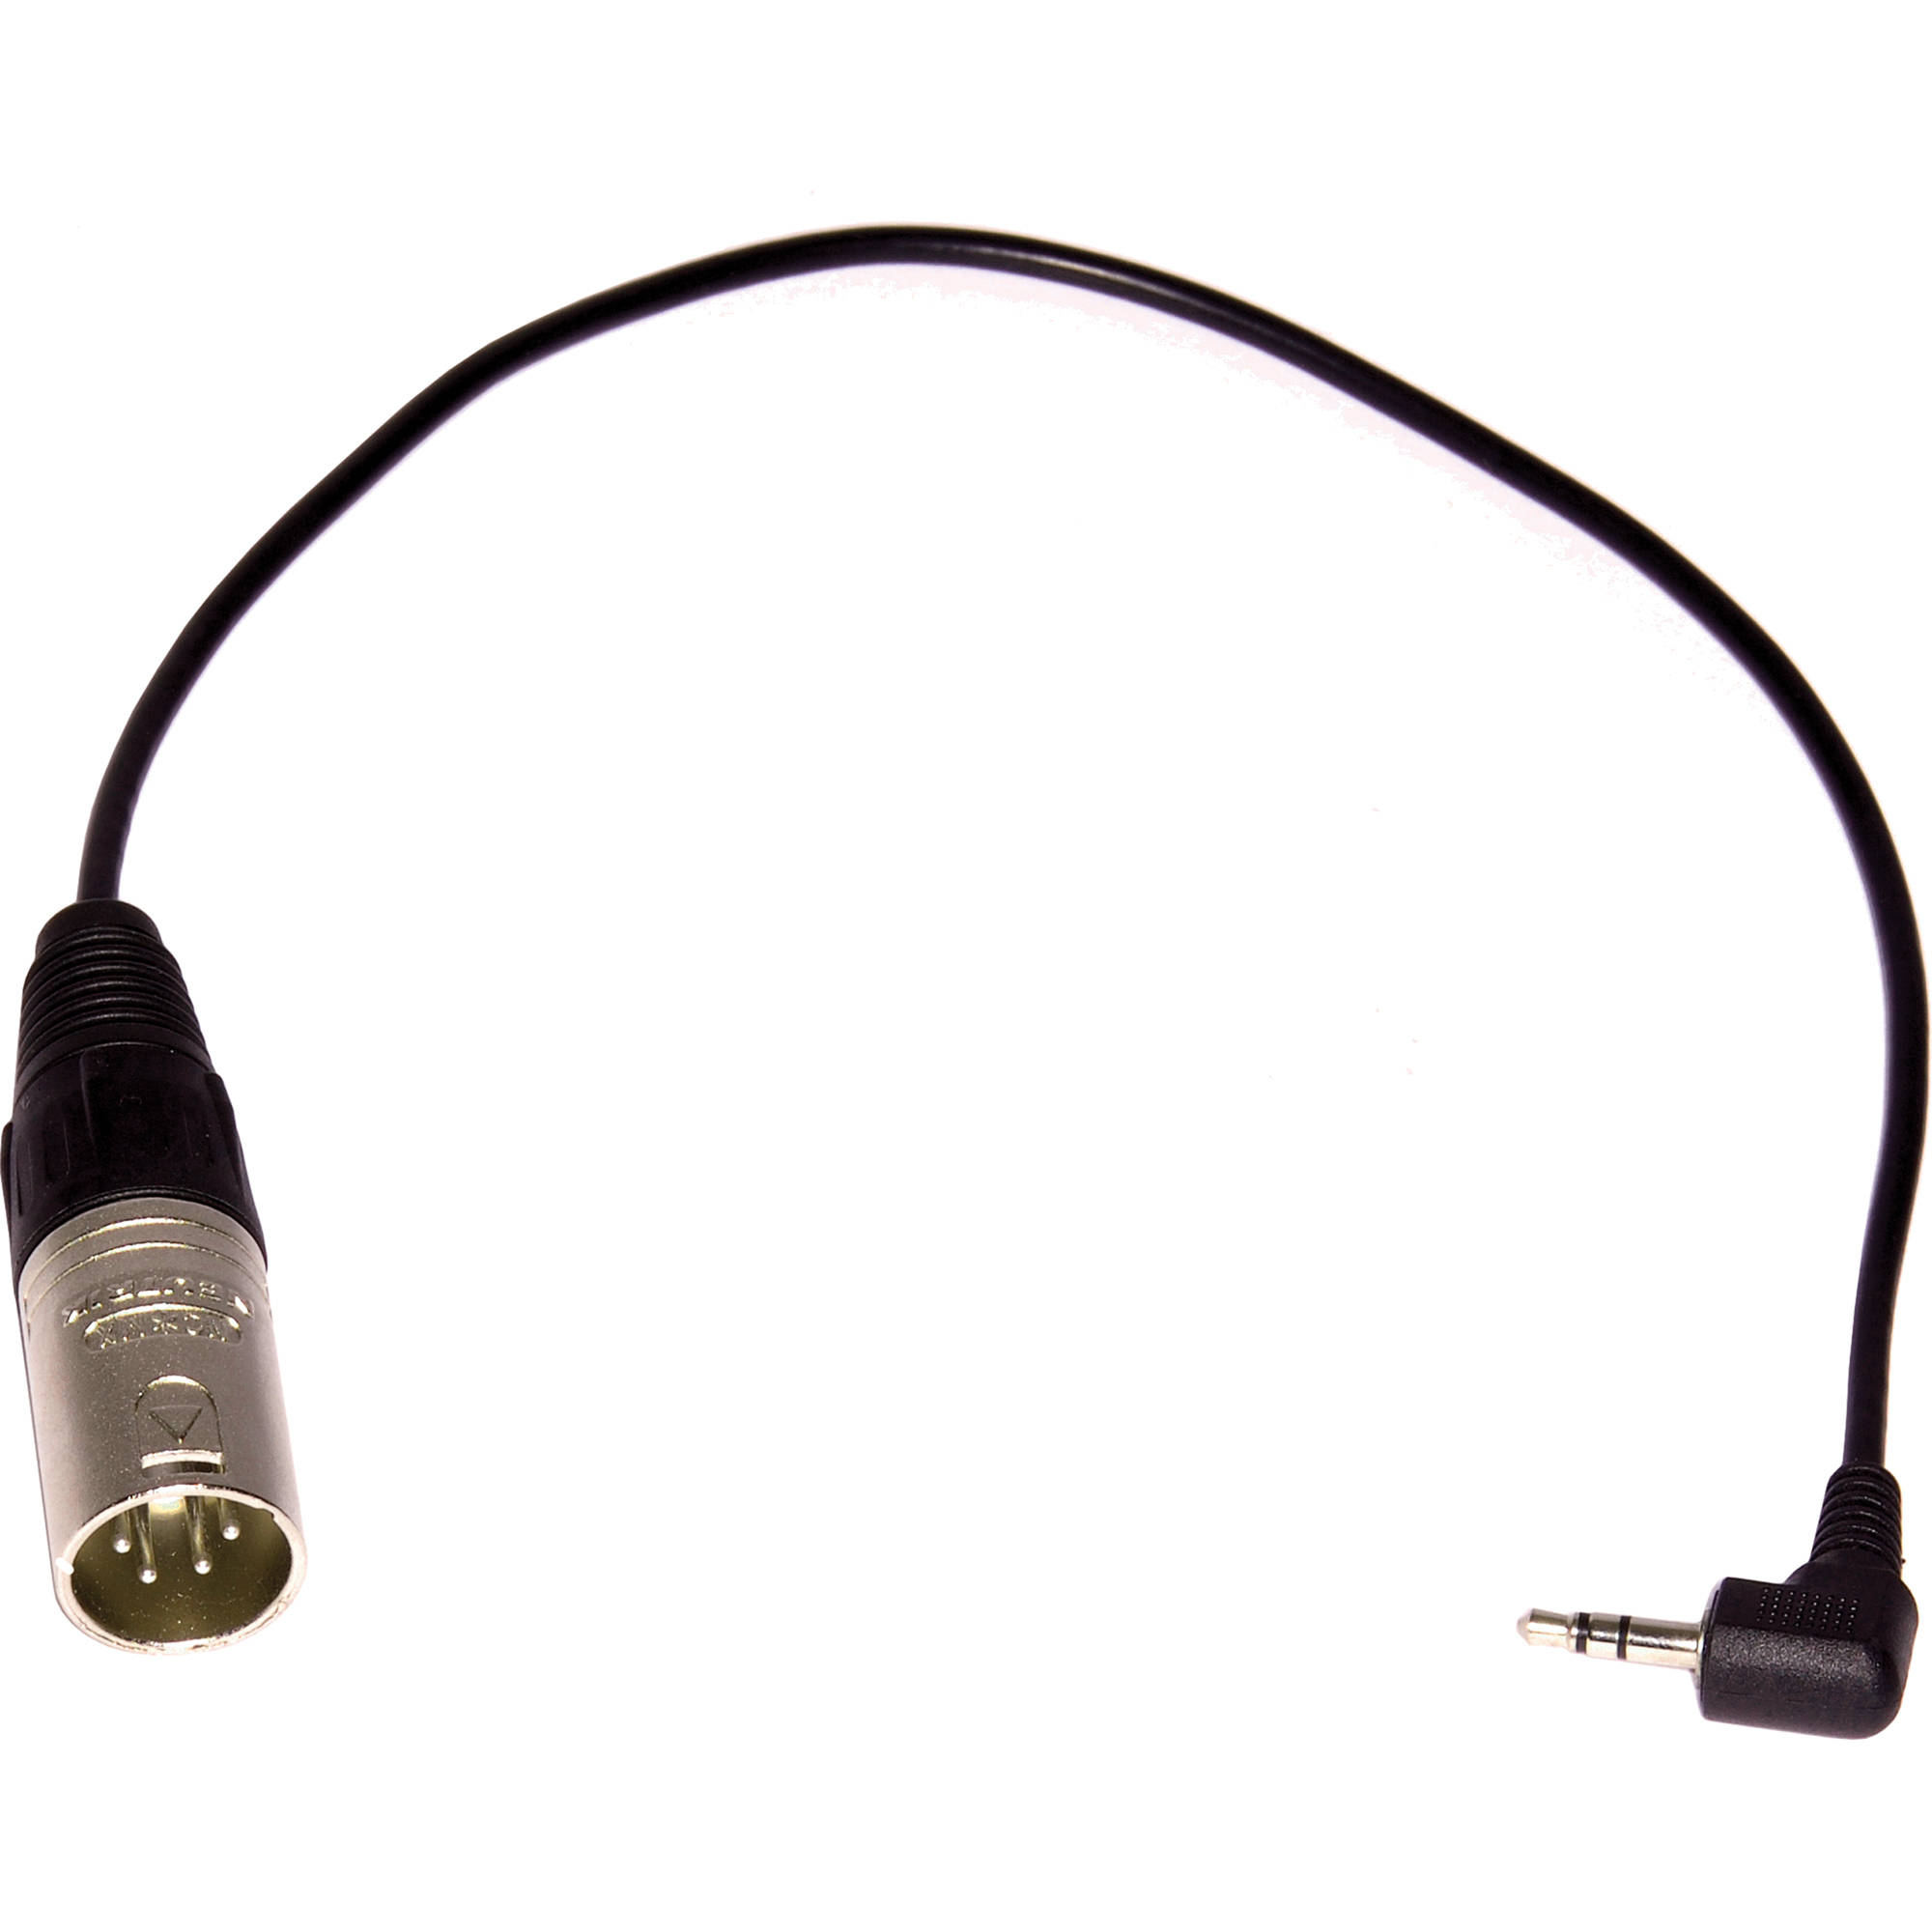 hight resolution of 4 pin to 7 pin adapter